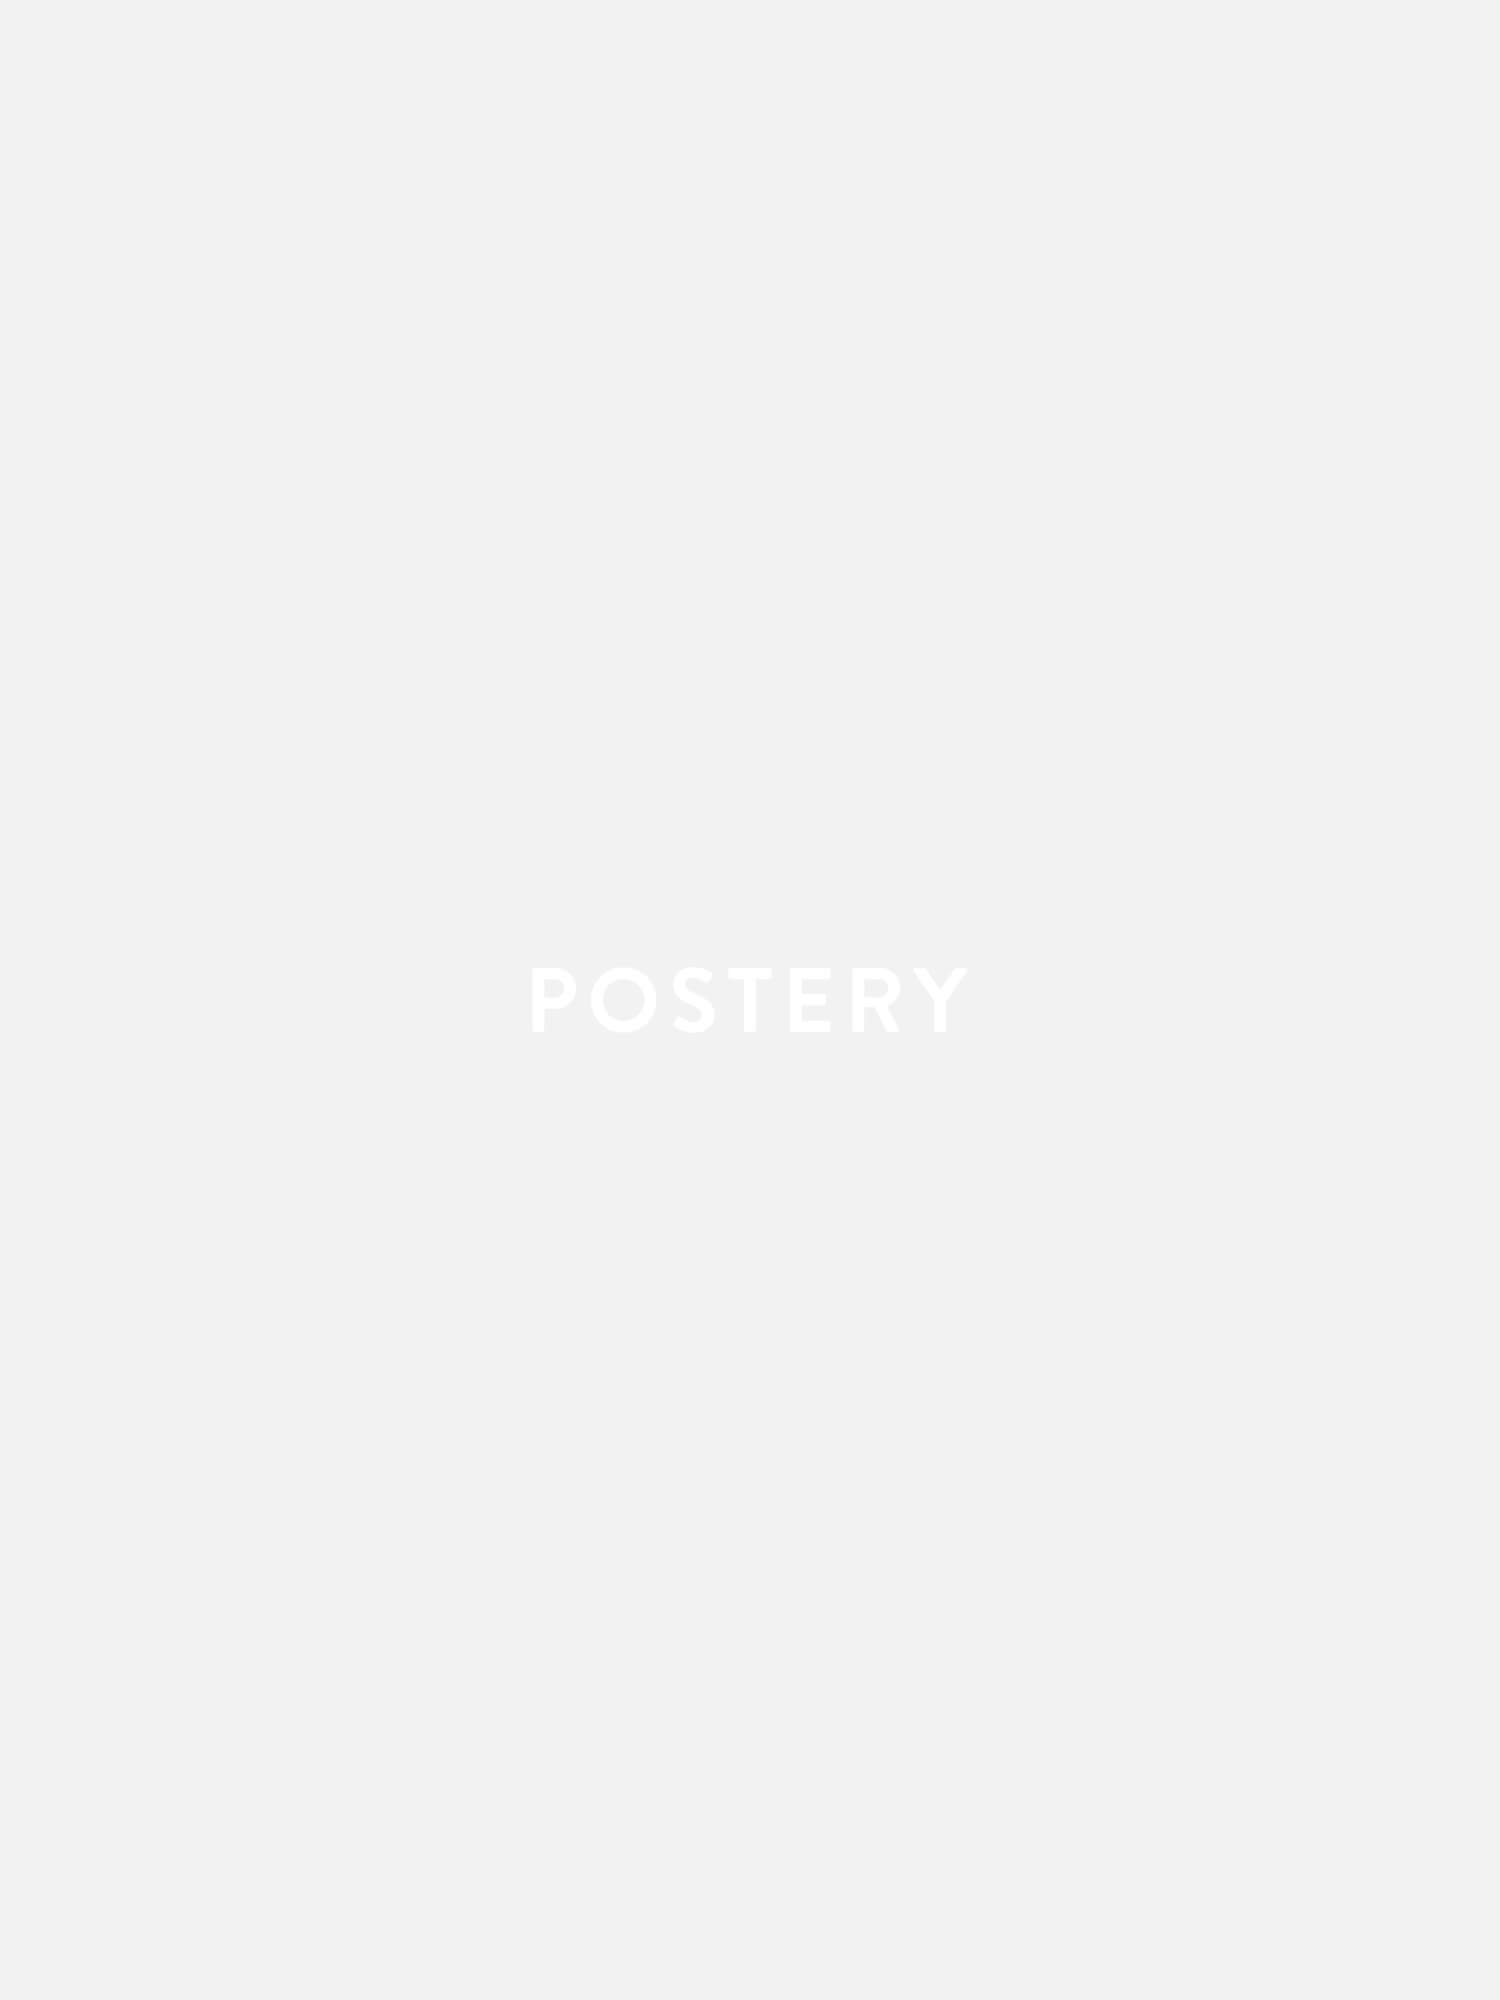 Avocado National Day Poster